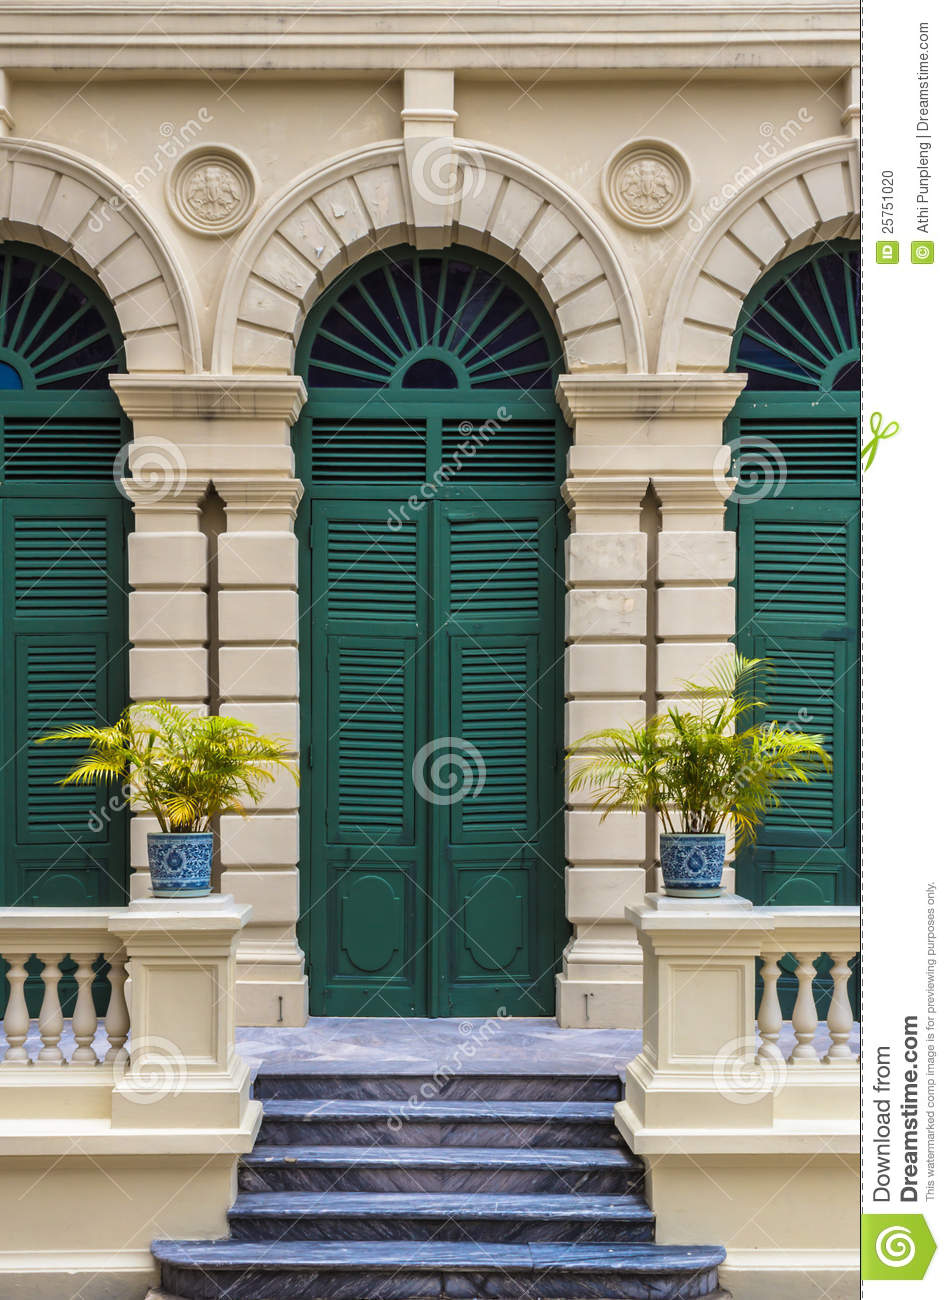 European Style Green Door Of Old Building Stock Photo